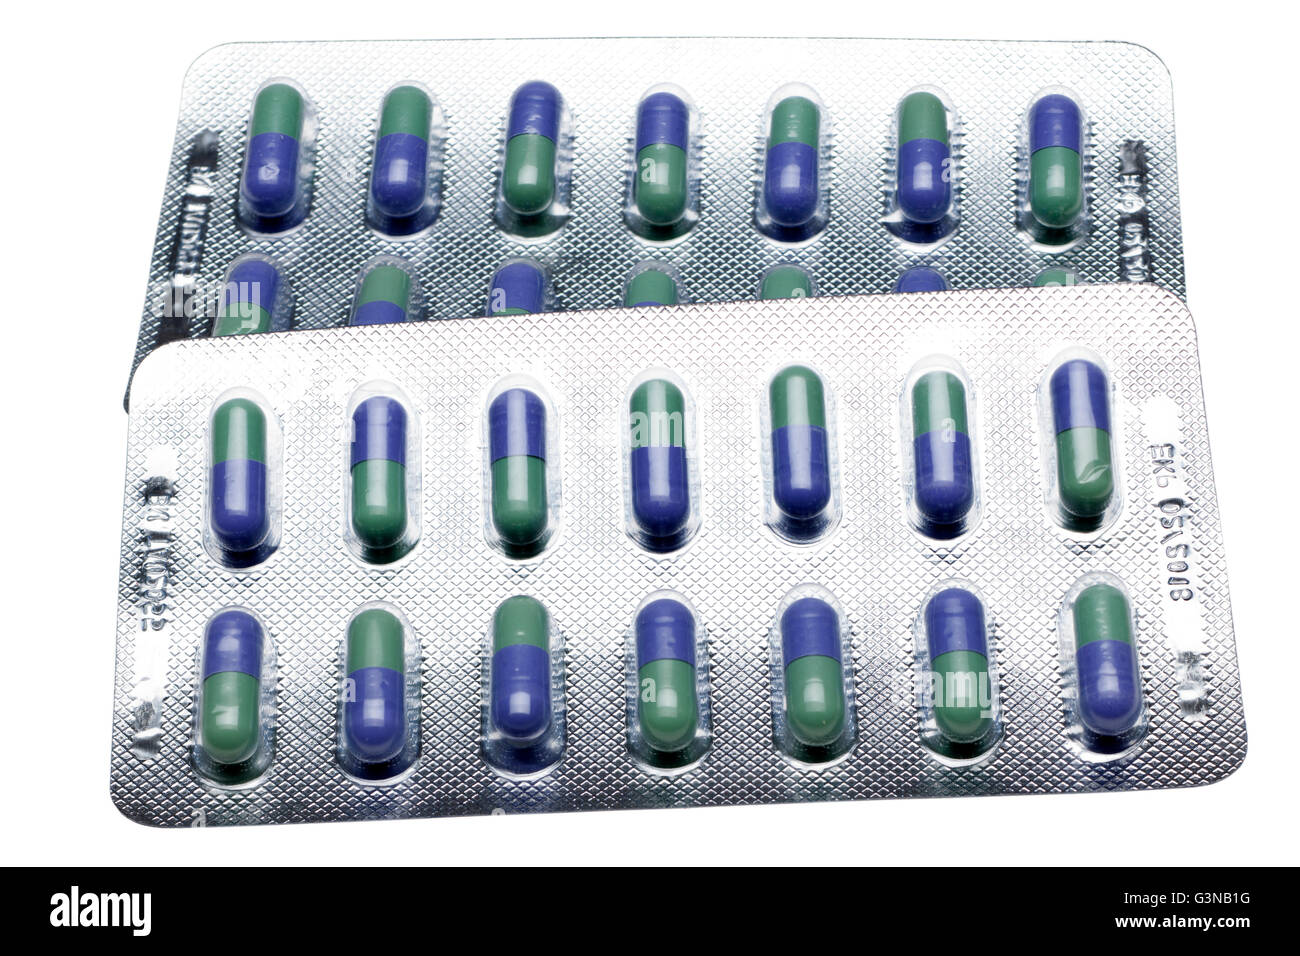 Two Blister packs of 50mg Trazodone  capsules - Stock Image